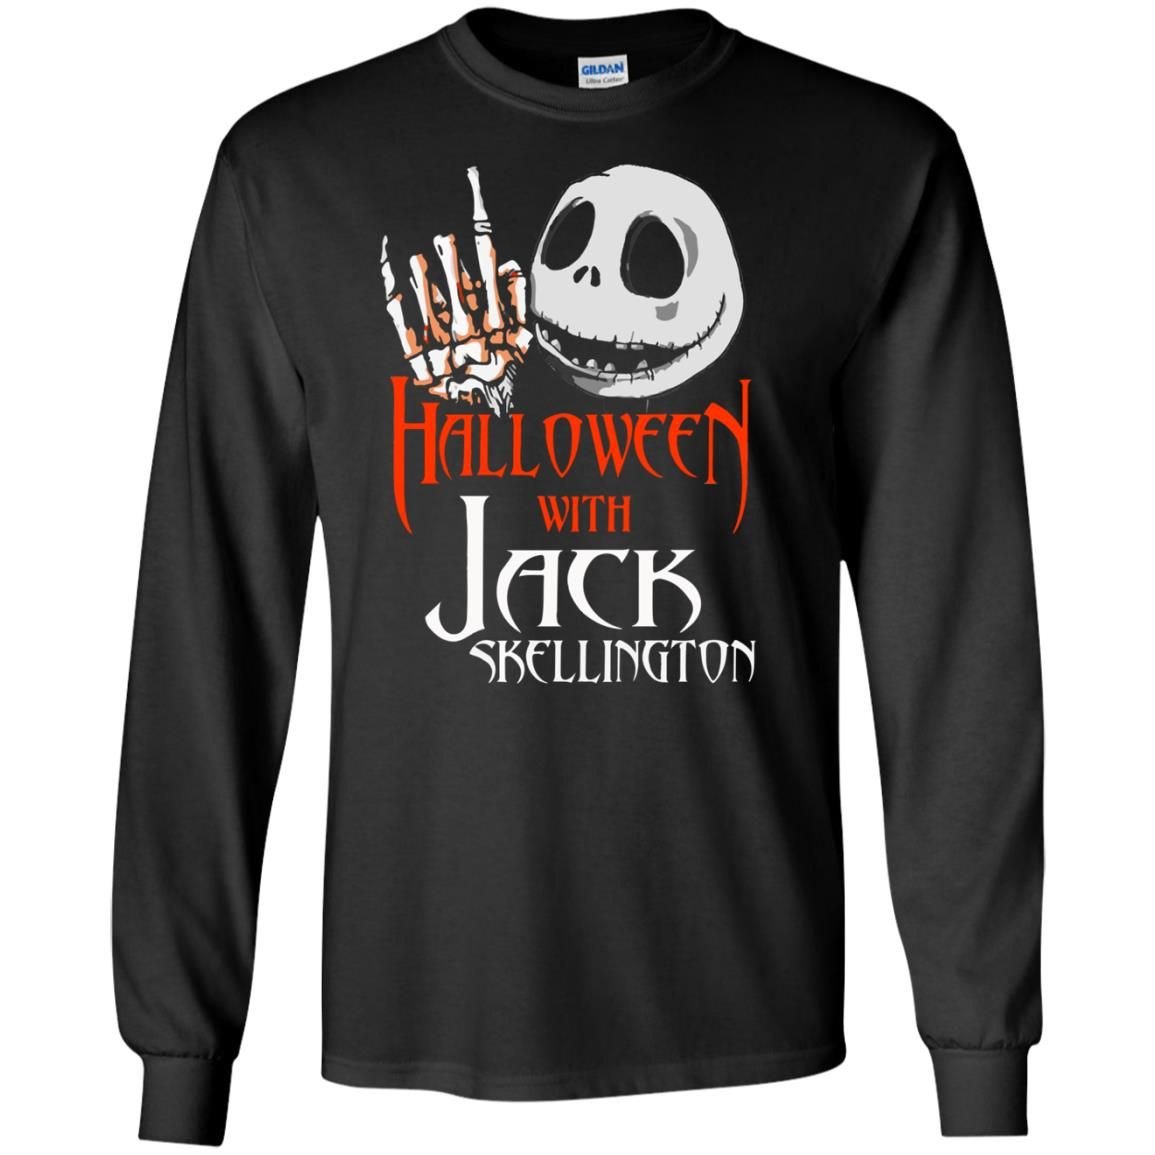 image 1378 - Halloween with Jack Skellington shirt, tank top, sweater